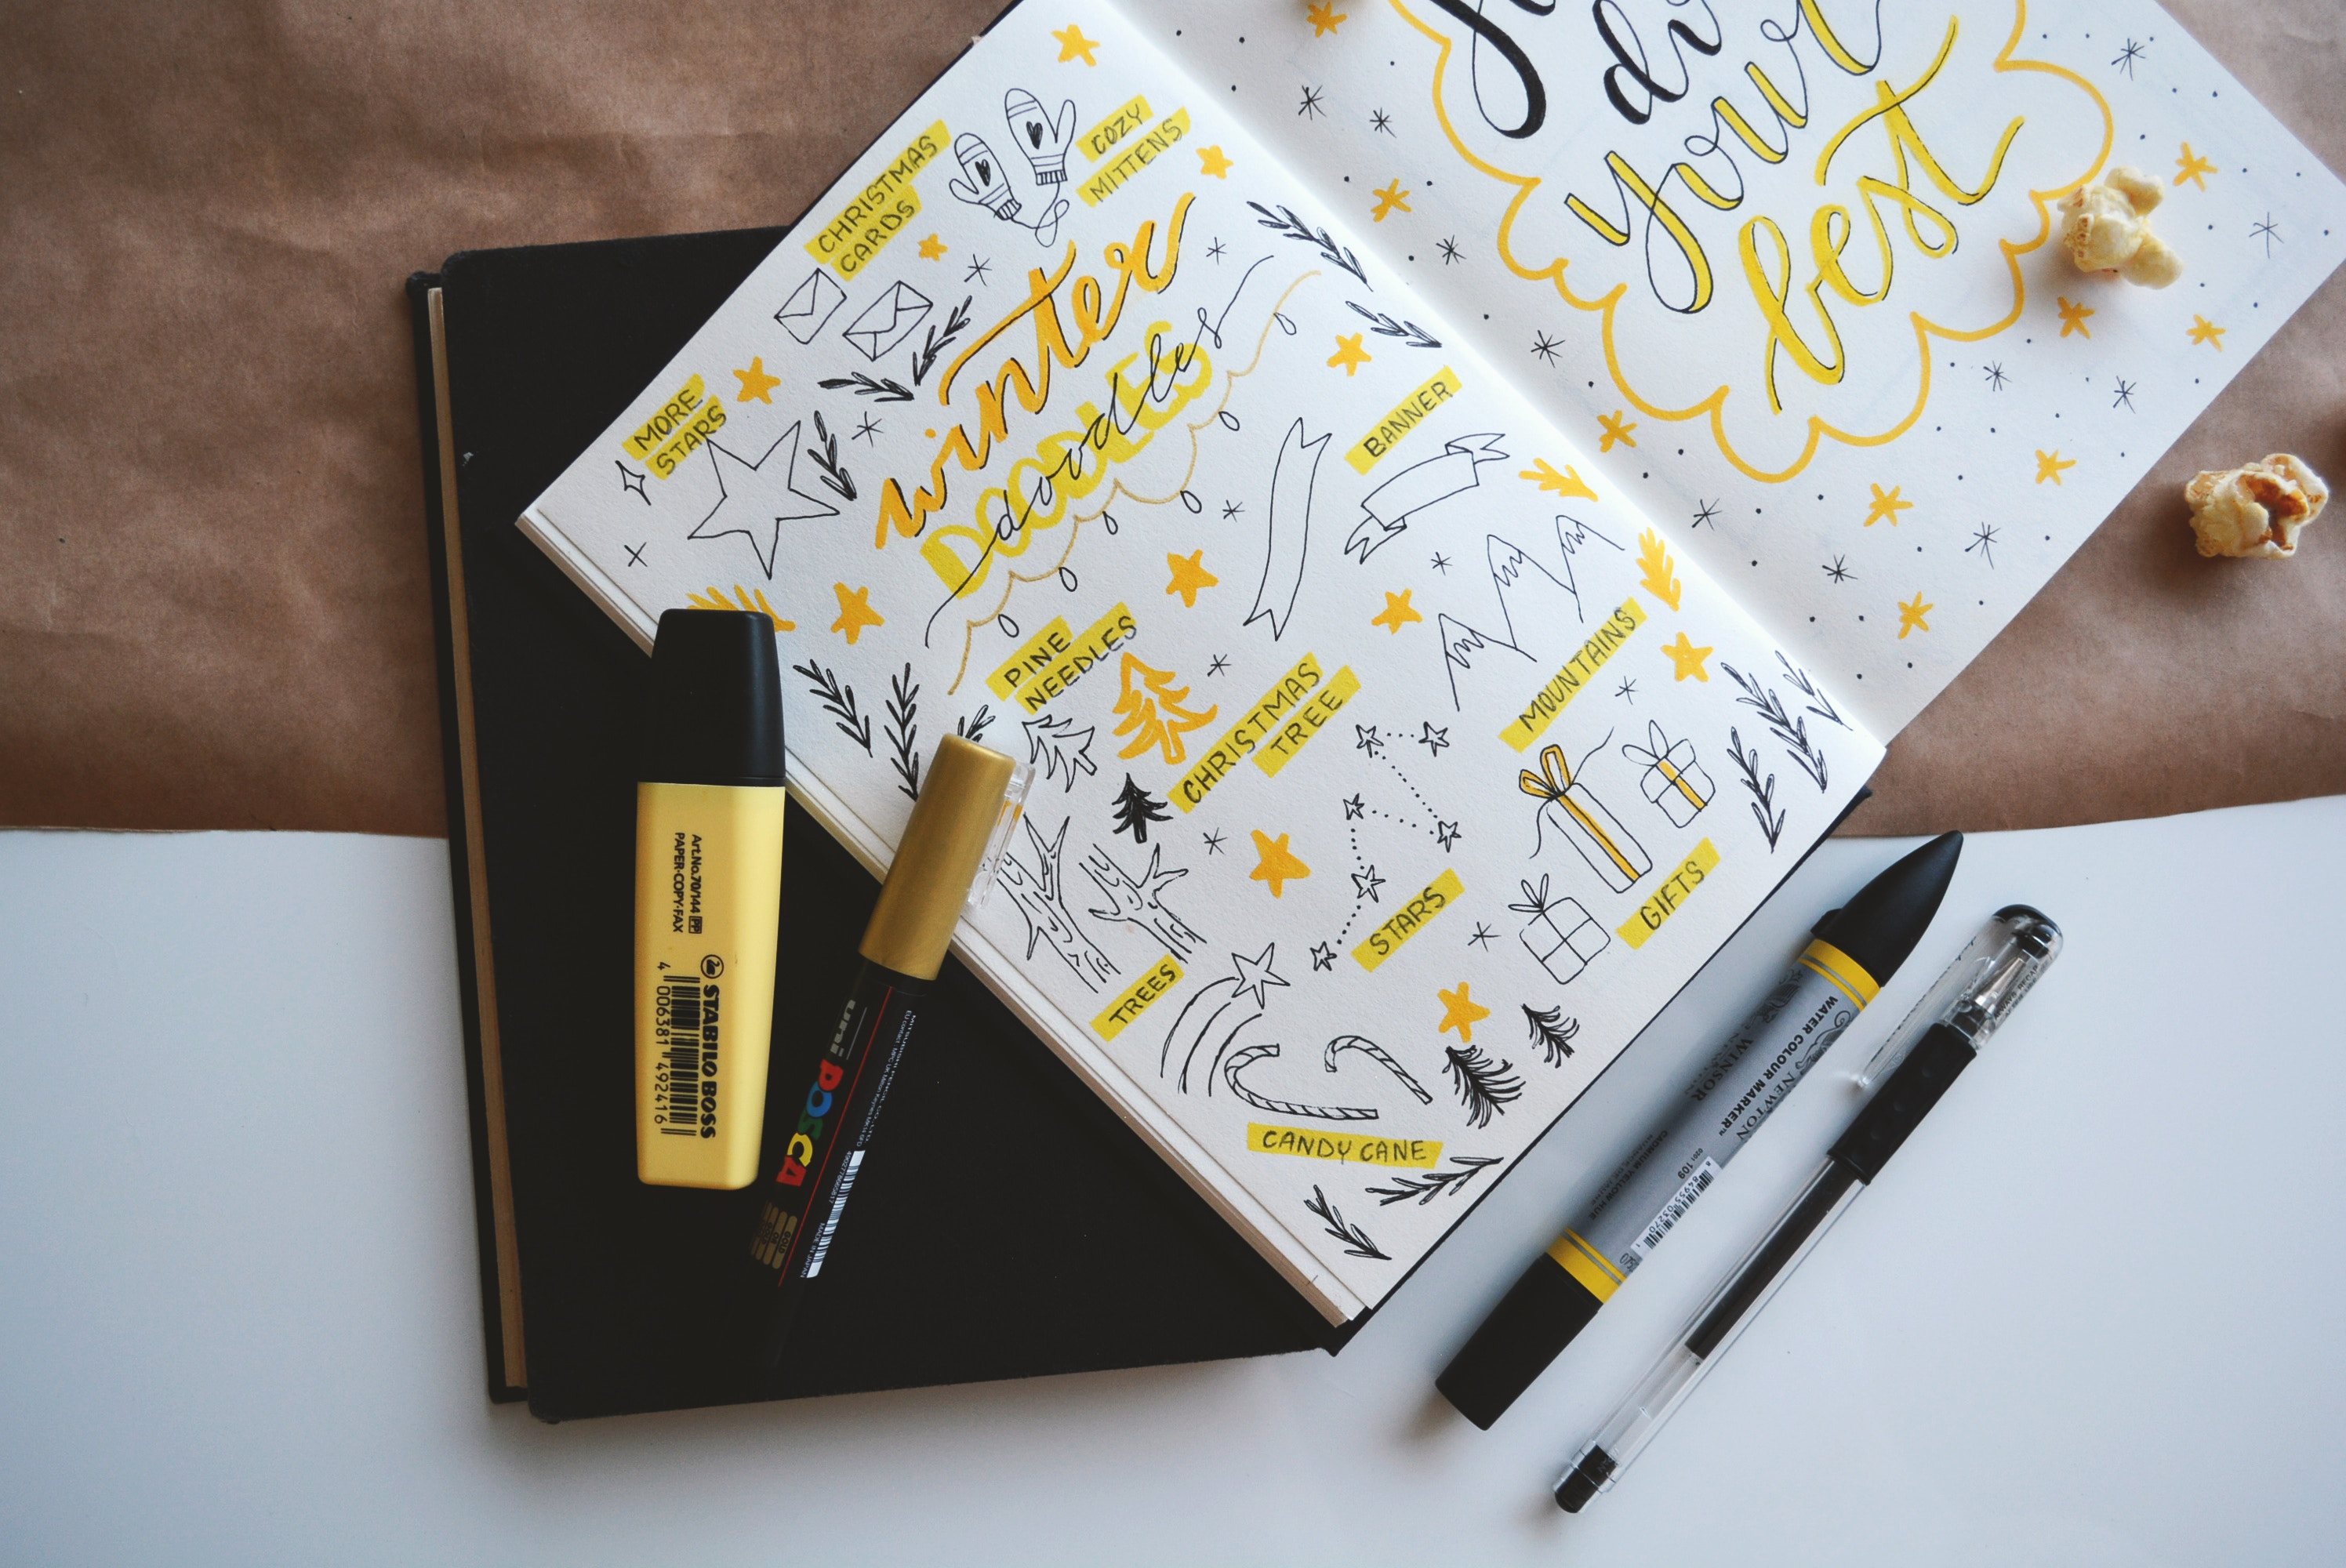 100+ Bullet Journal Collection Ideas To Inspire You